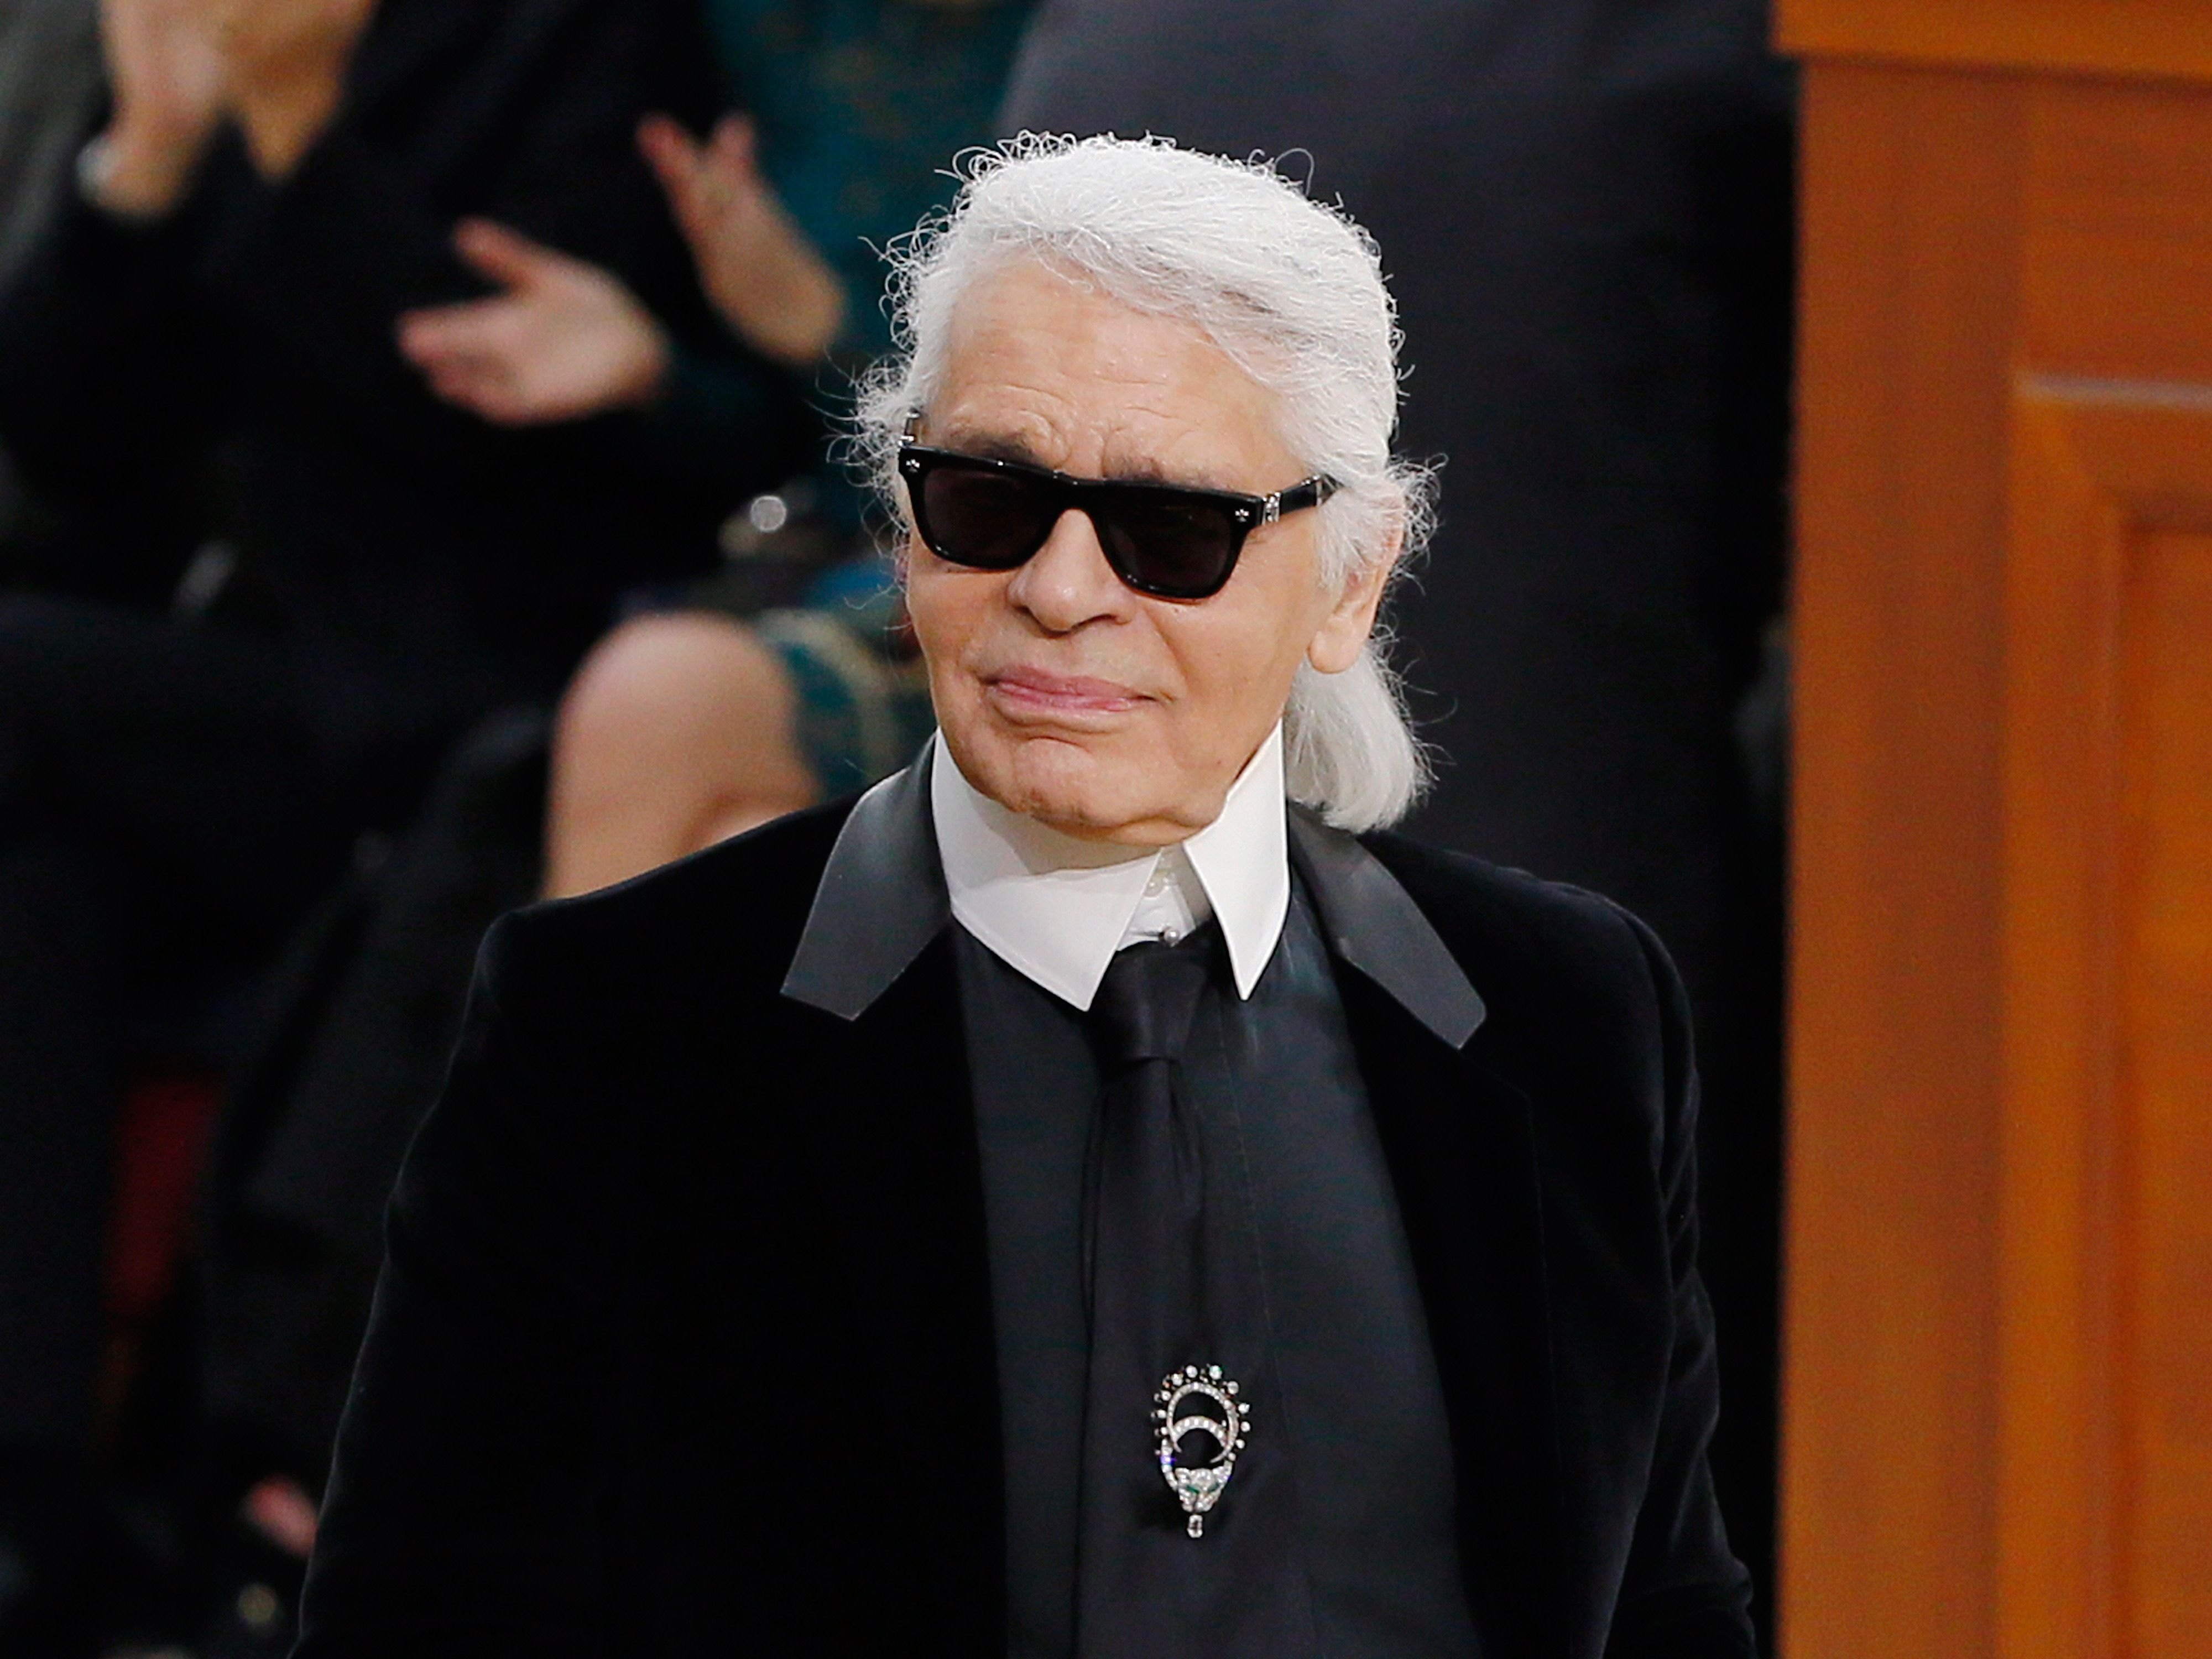 Why Karl Lagerfeld Refuses to Go to a New Exhibit of His Work Why Karl Lagerfeld Refuses to Go to a New Exhibit of His Work new images